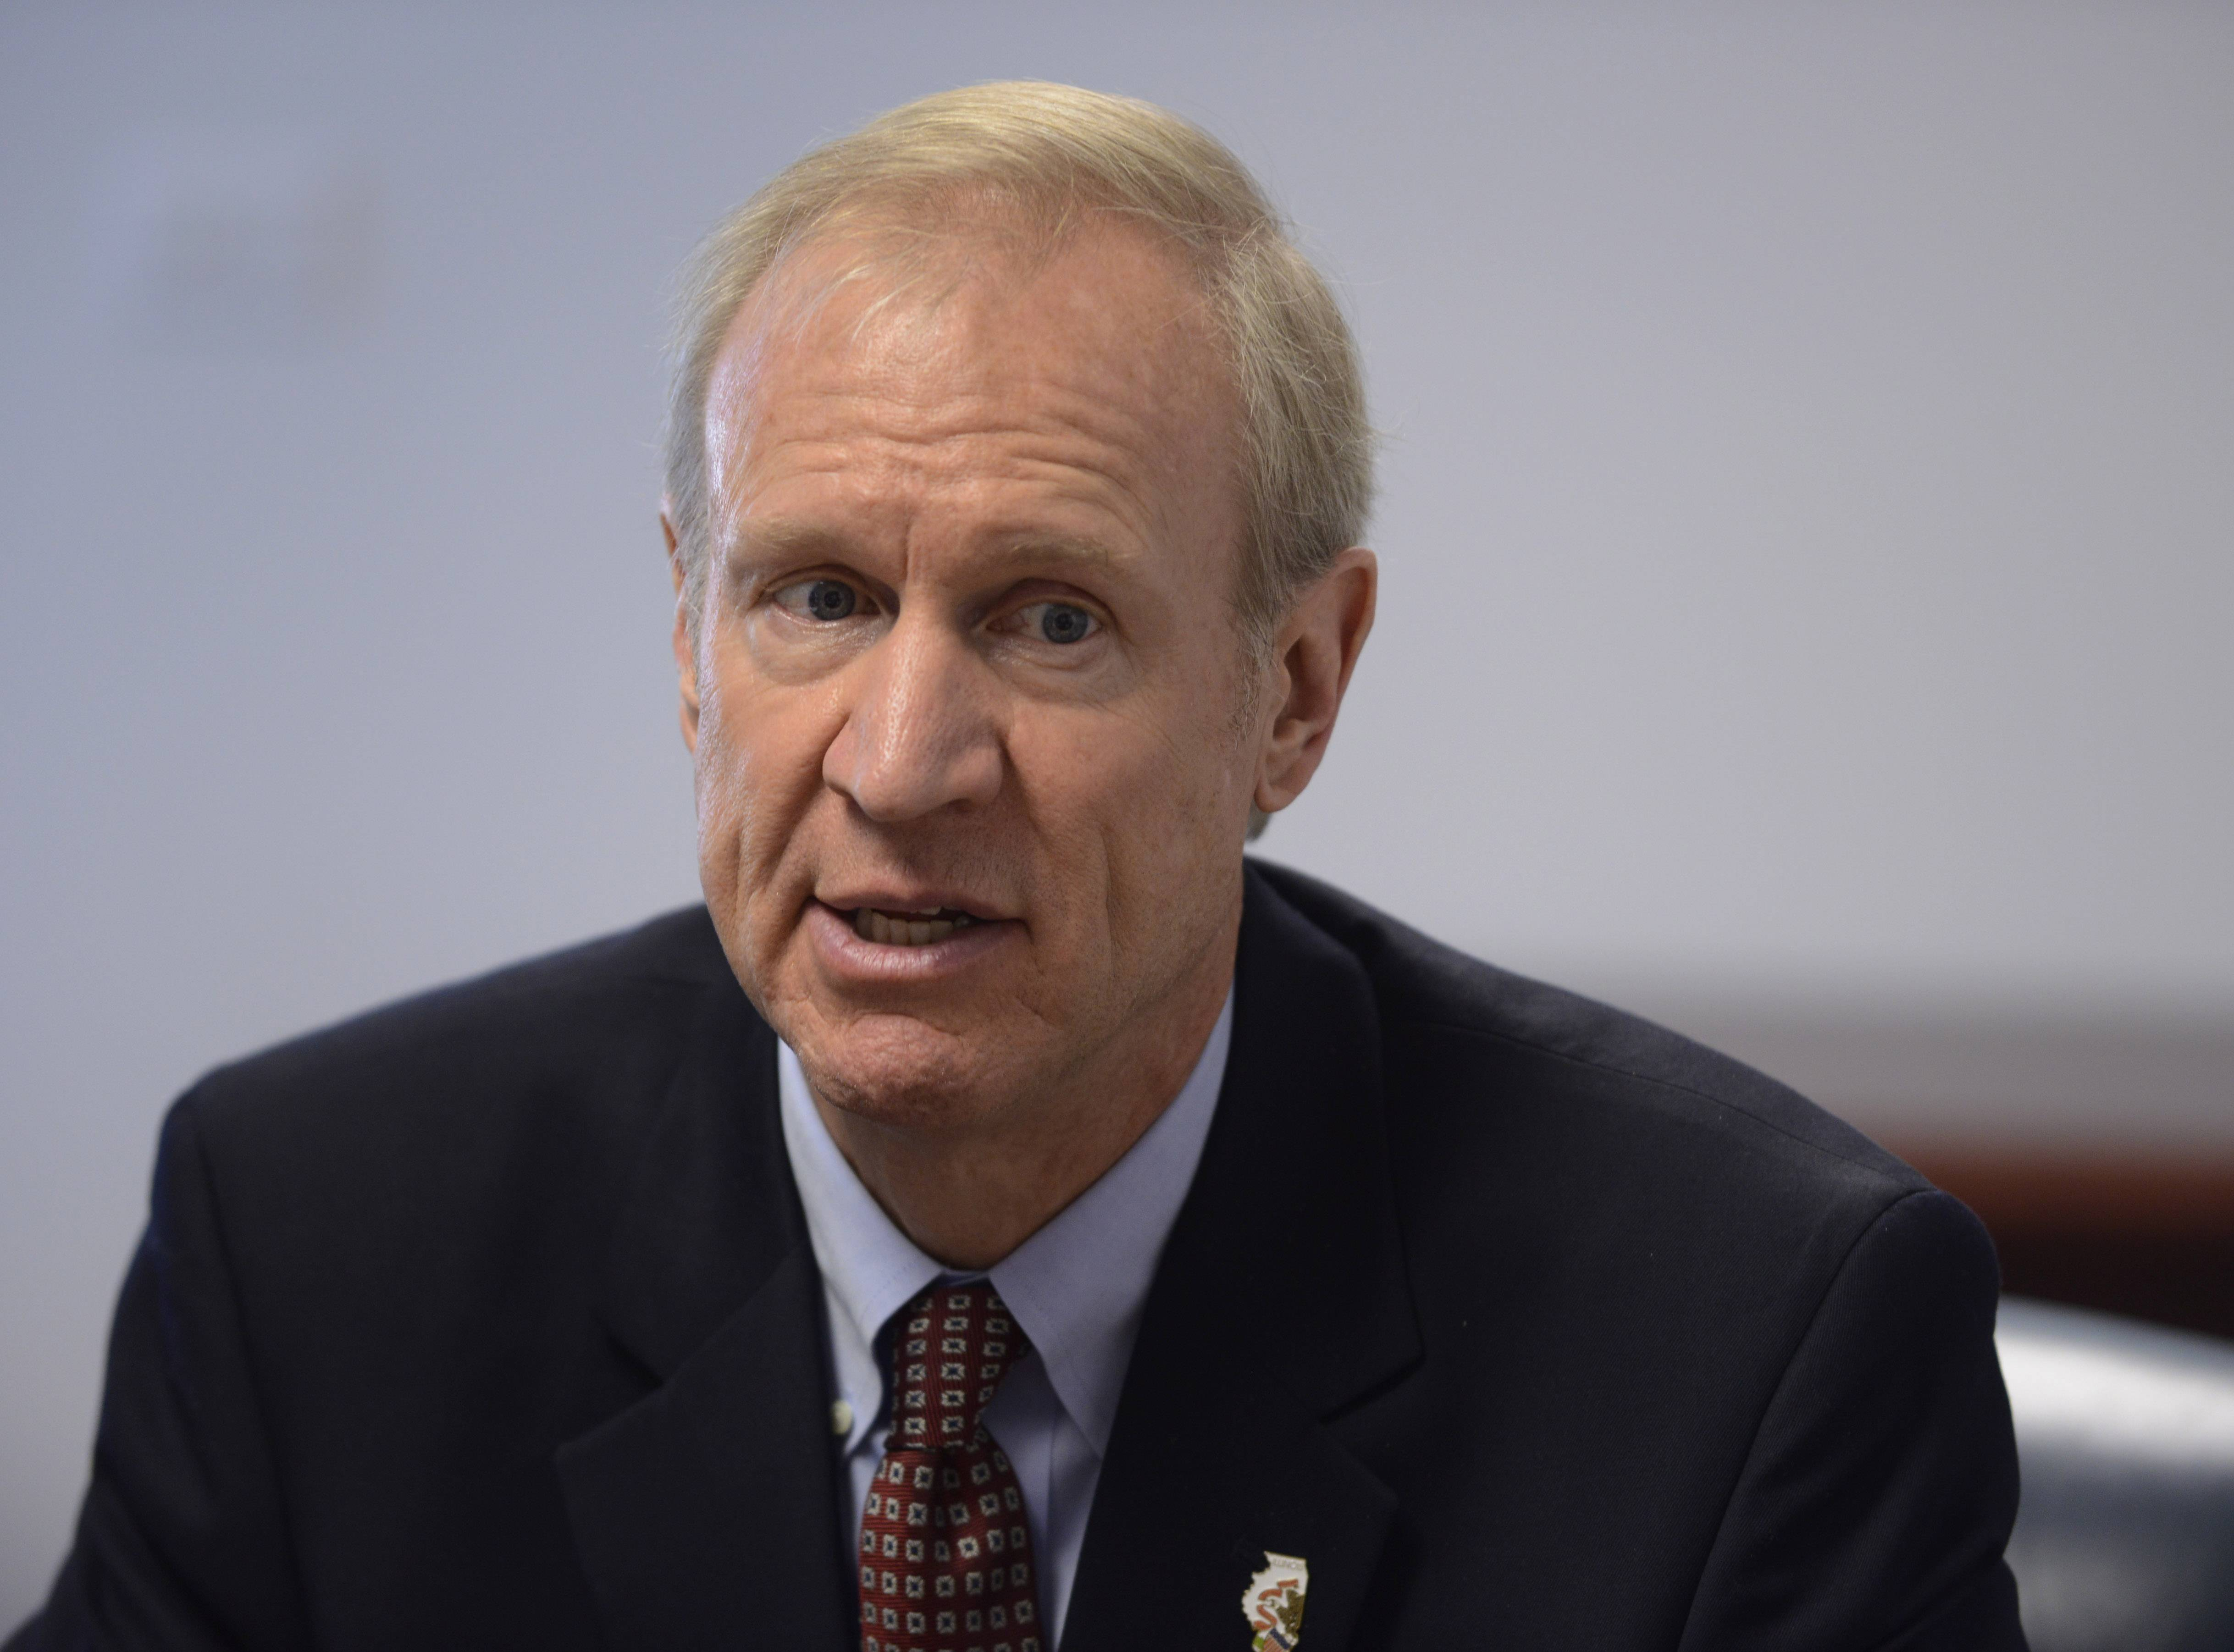 Rauner: Specifics on property taxes will be worked out after election